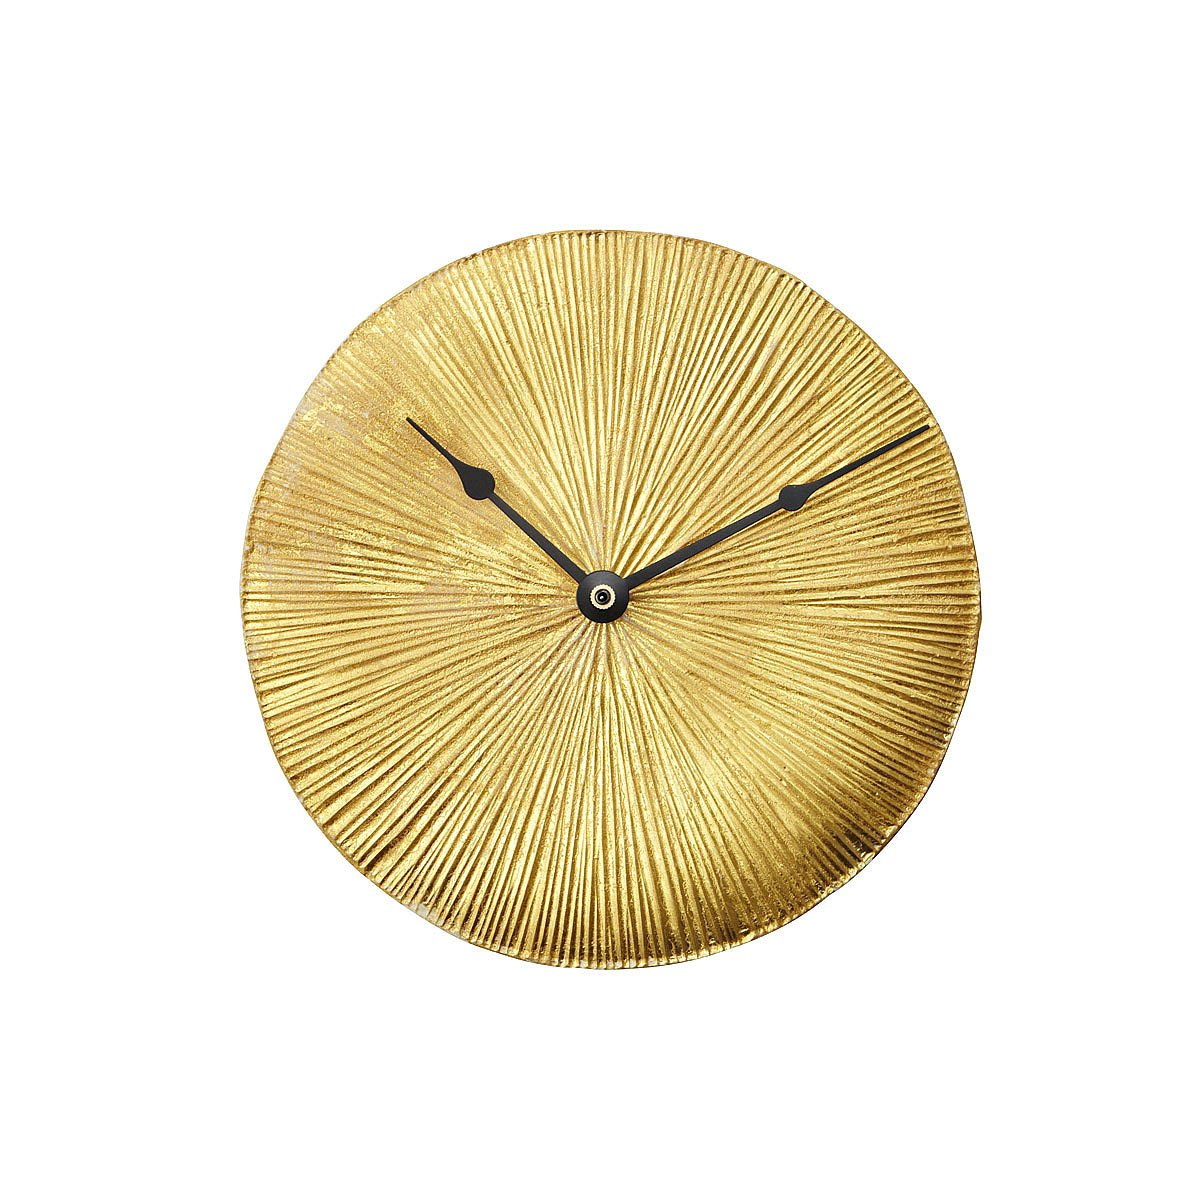 Gold Leaf Wall Clock | rustic home decor, decorative clocks, ceramic ...